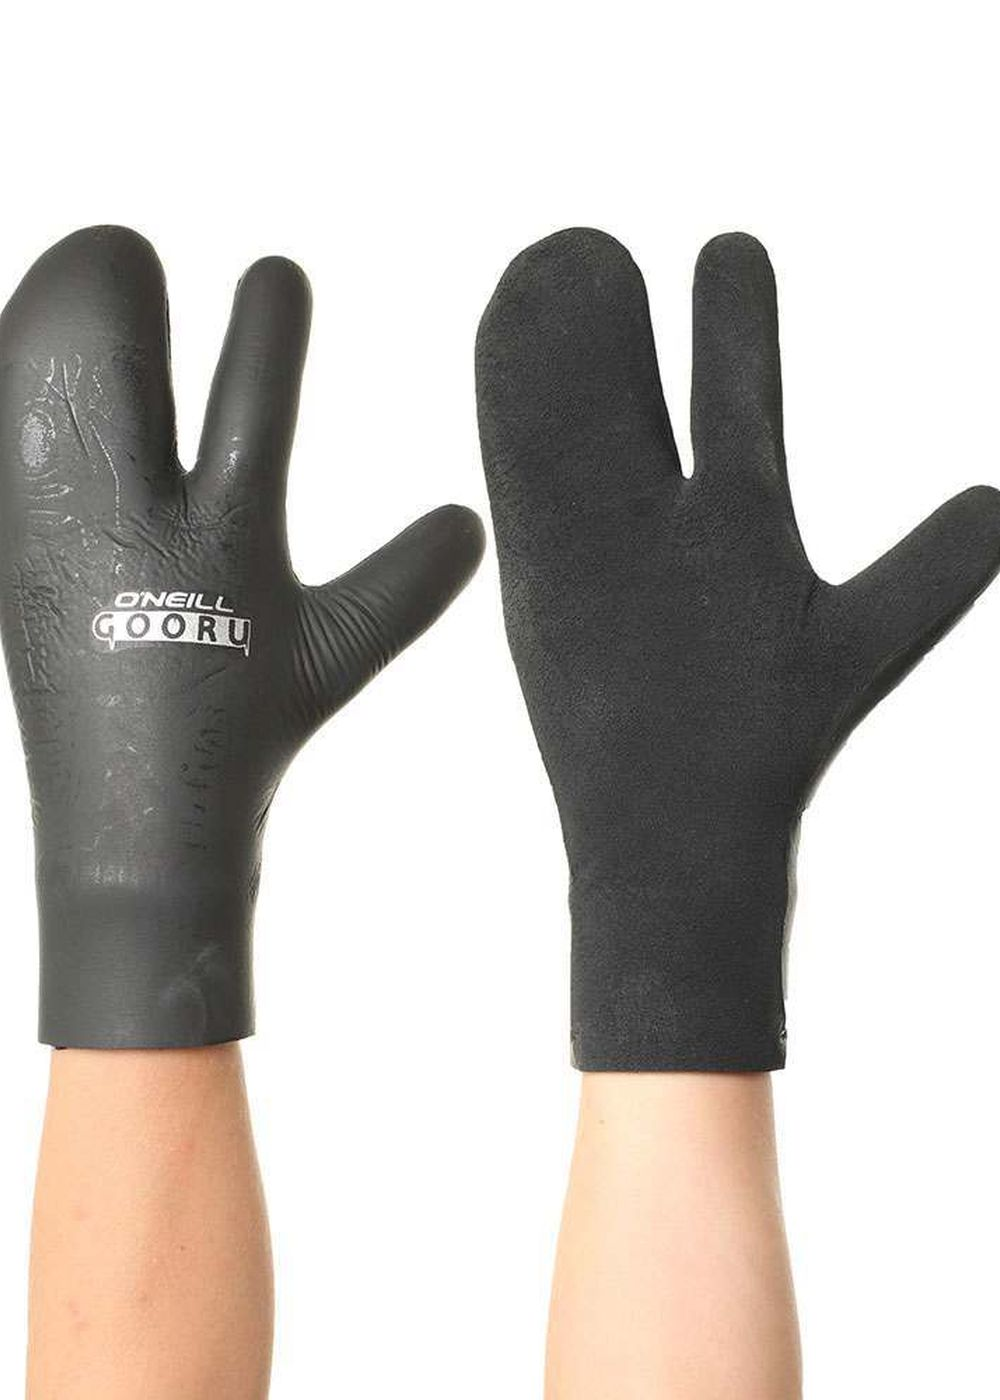 Oneill Gooru 5mm Dipped Lobster Wetsuit Gloves Picture